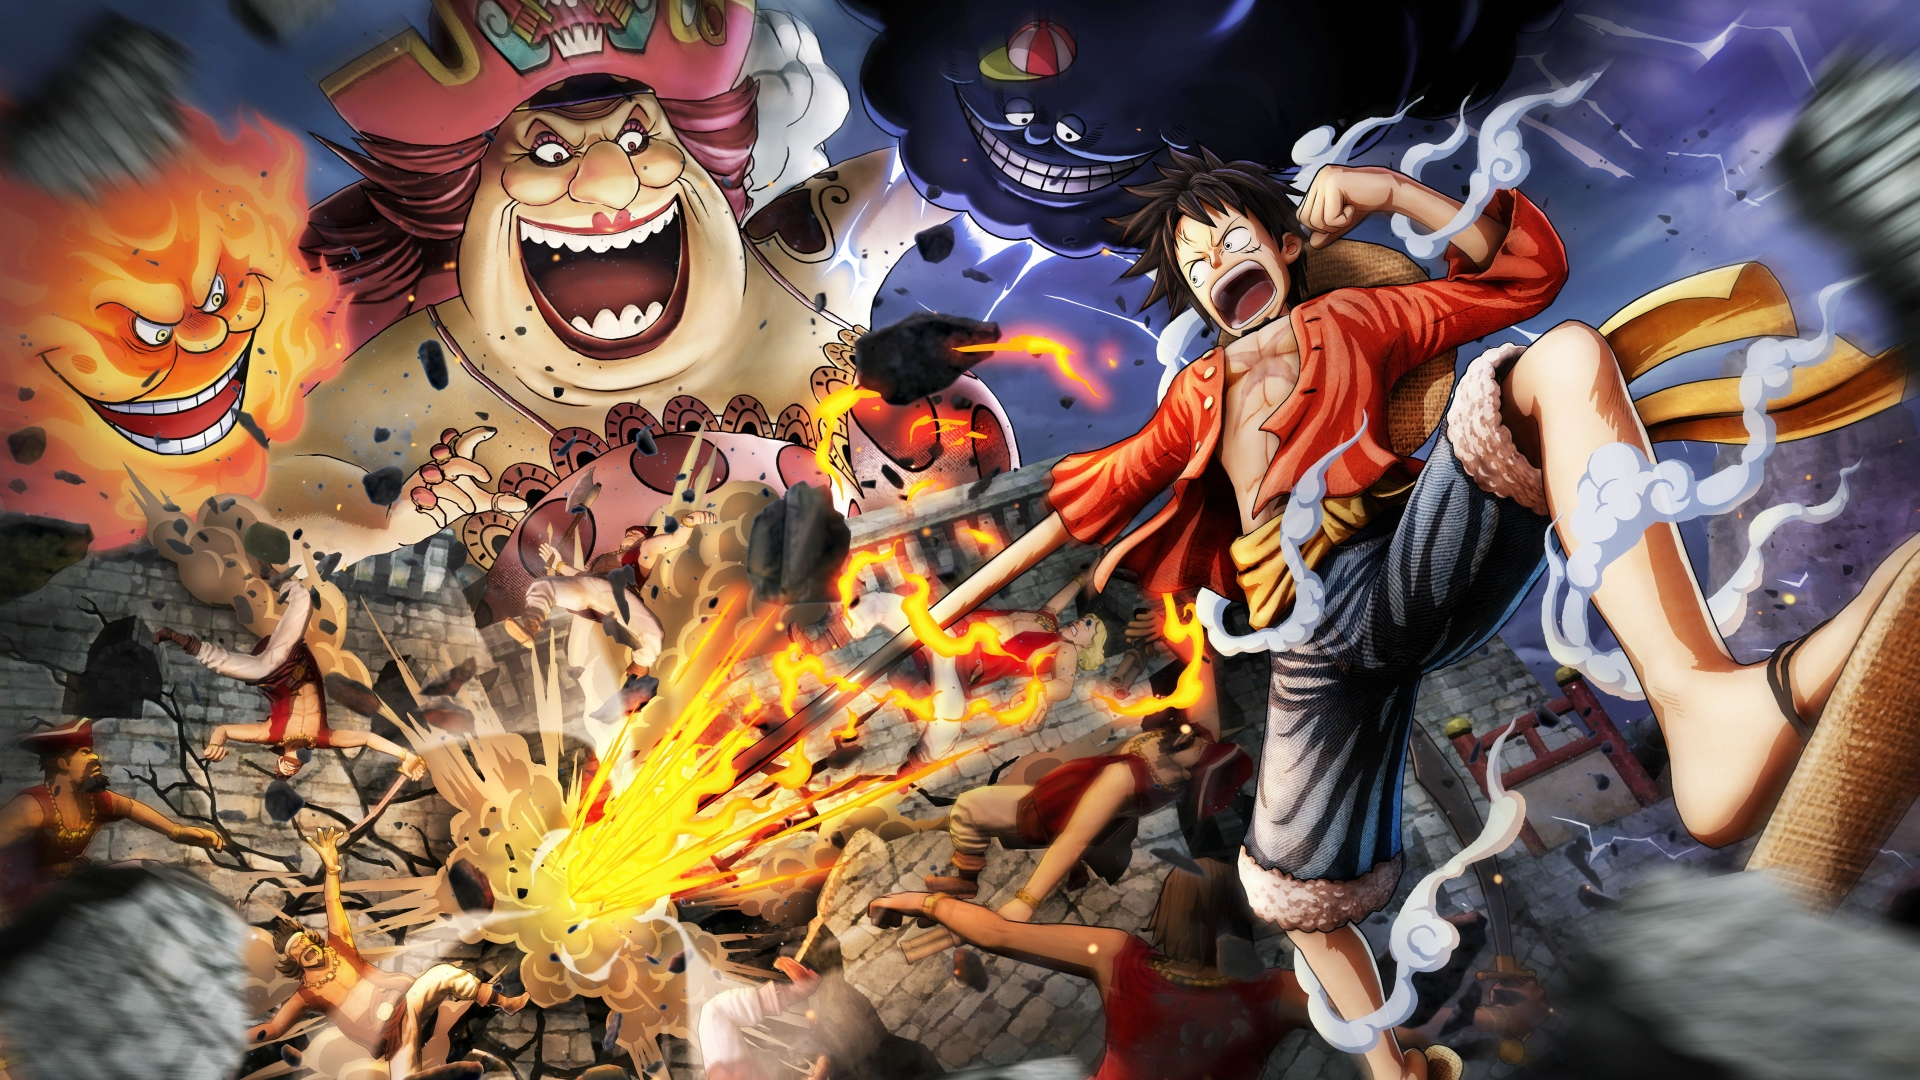 One Piece Laptop Wallpaper Posted By Sarah Thompson